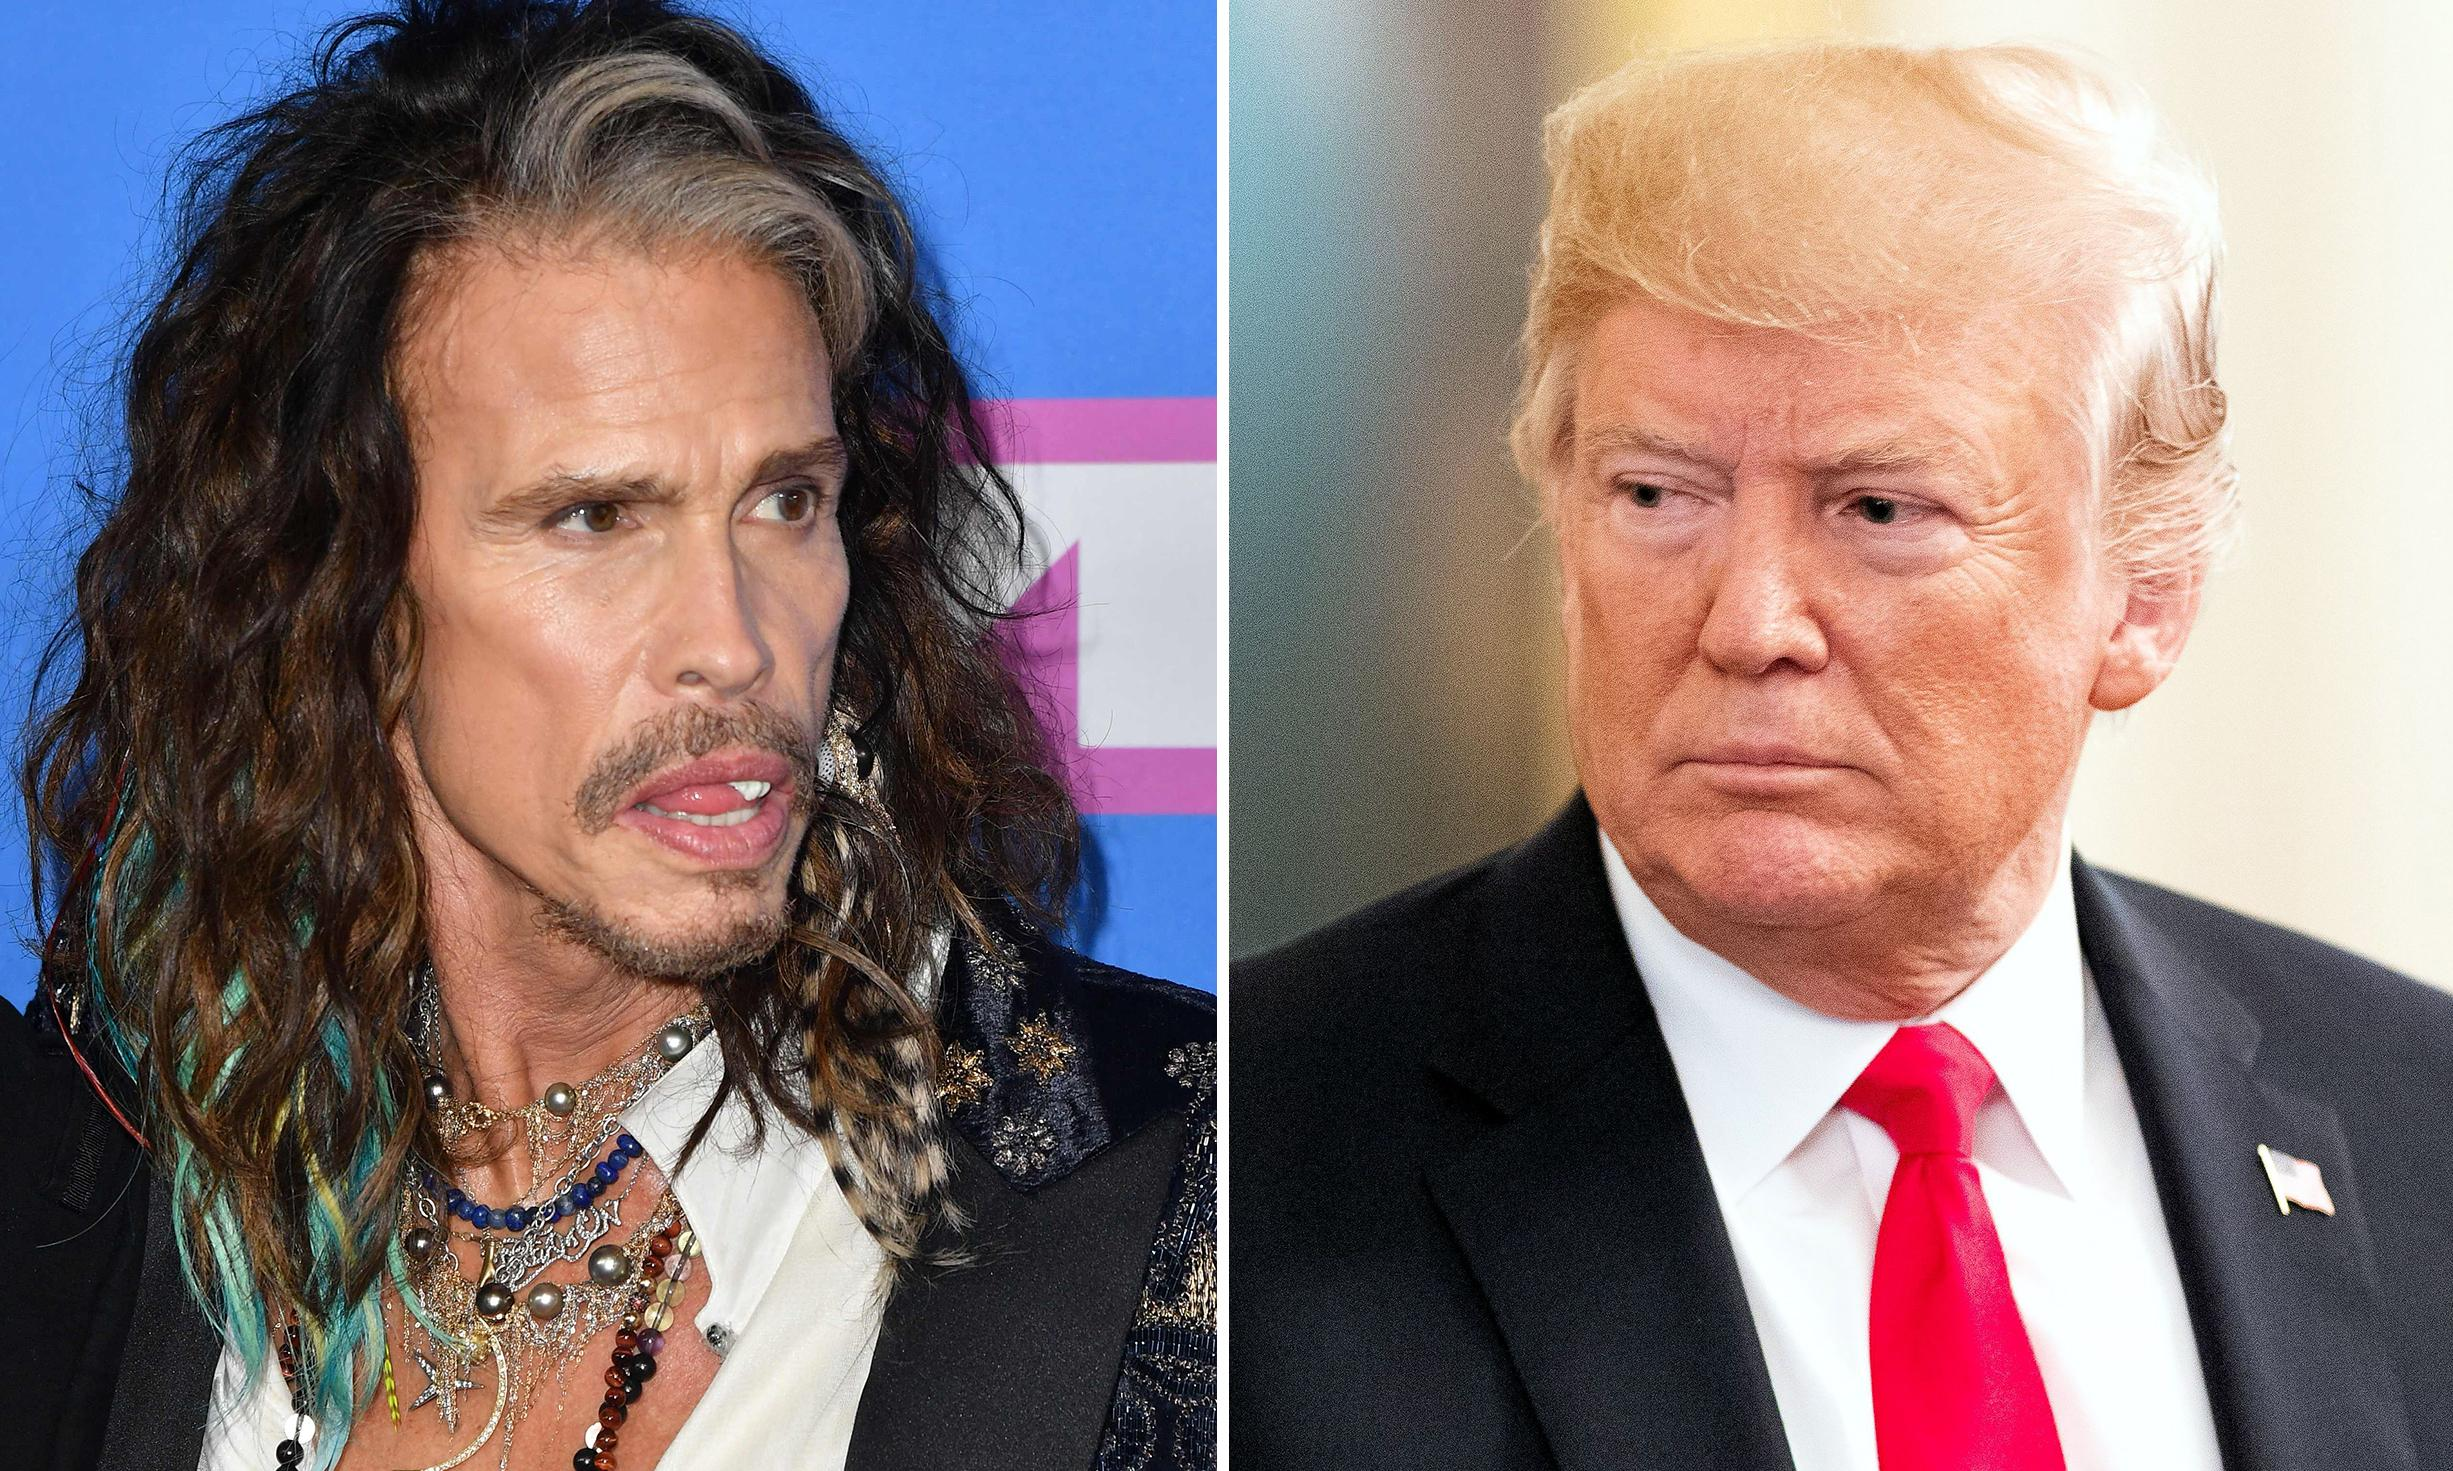 Steven Tyler orders Donald Trump to stop playing Aerosmith music at rallies